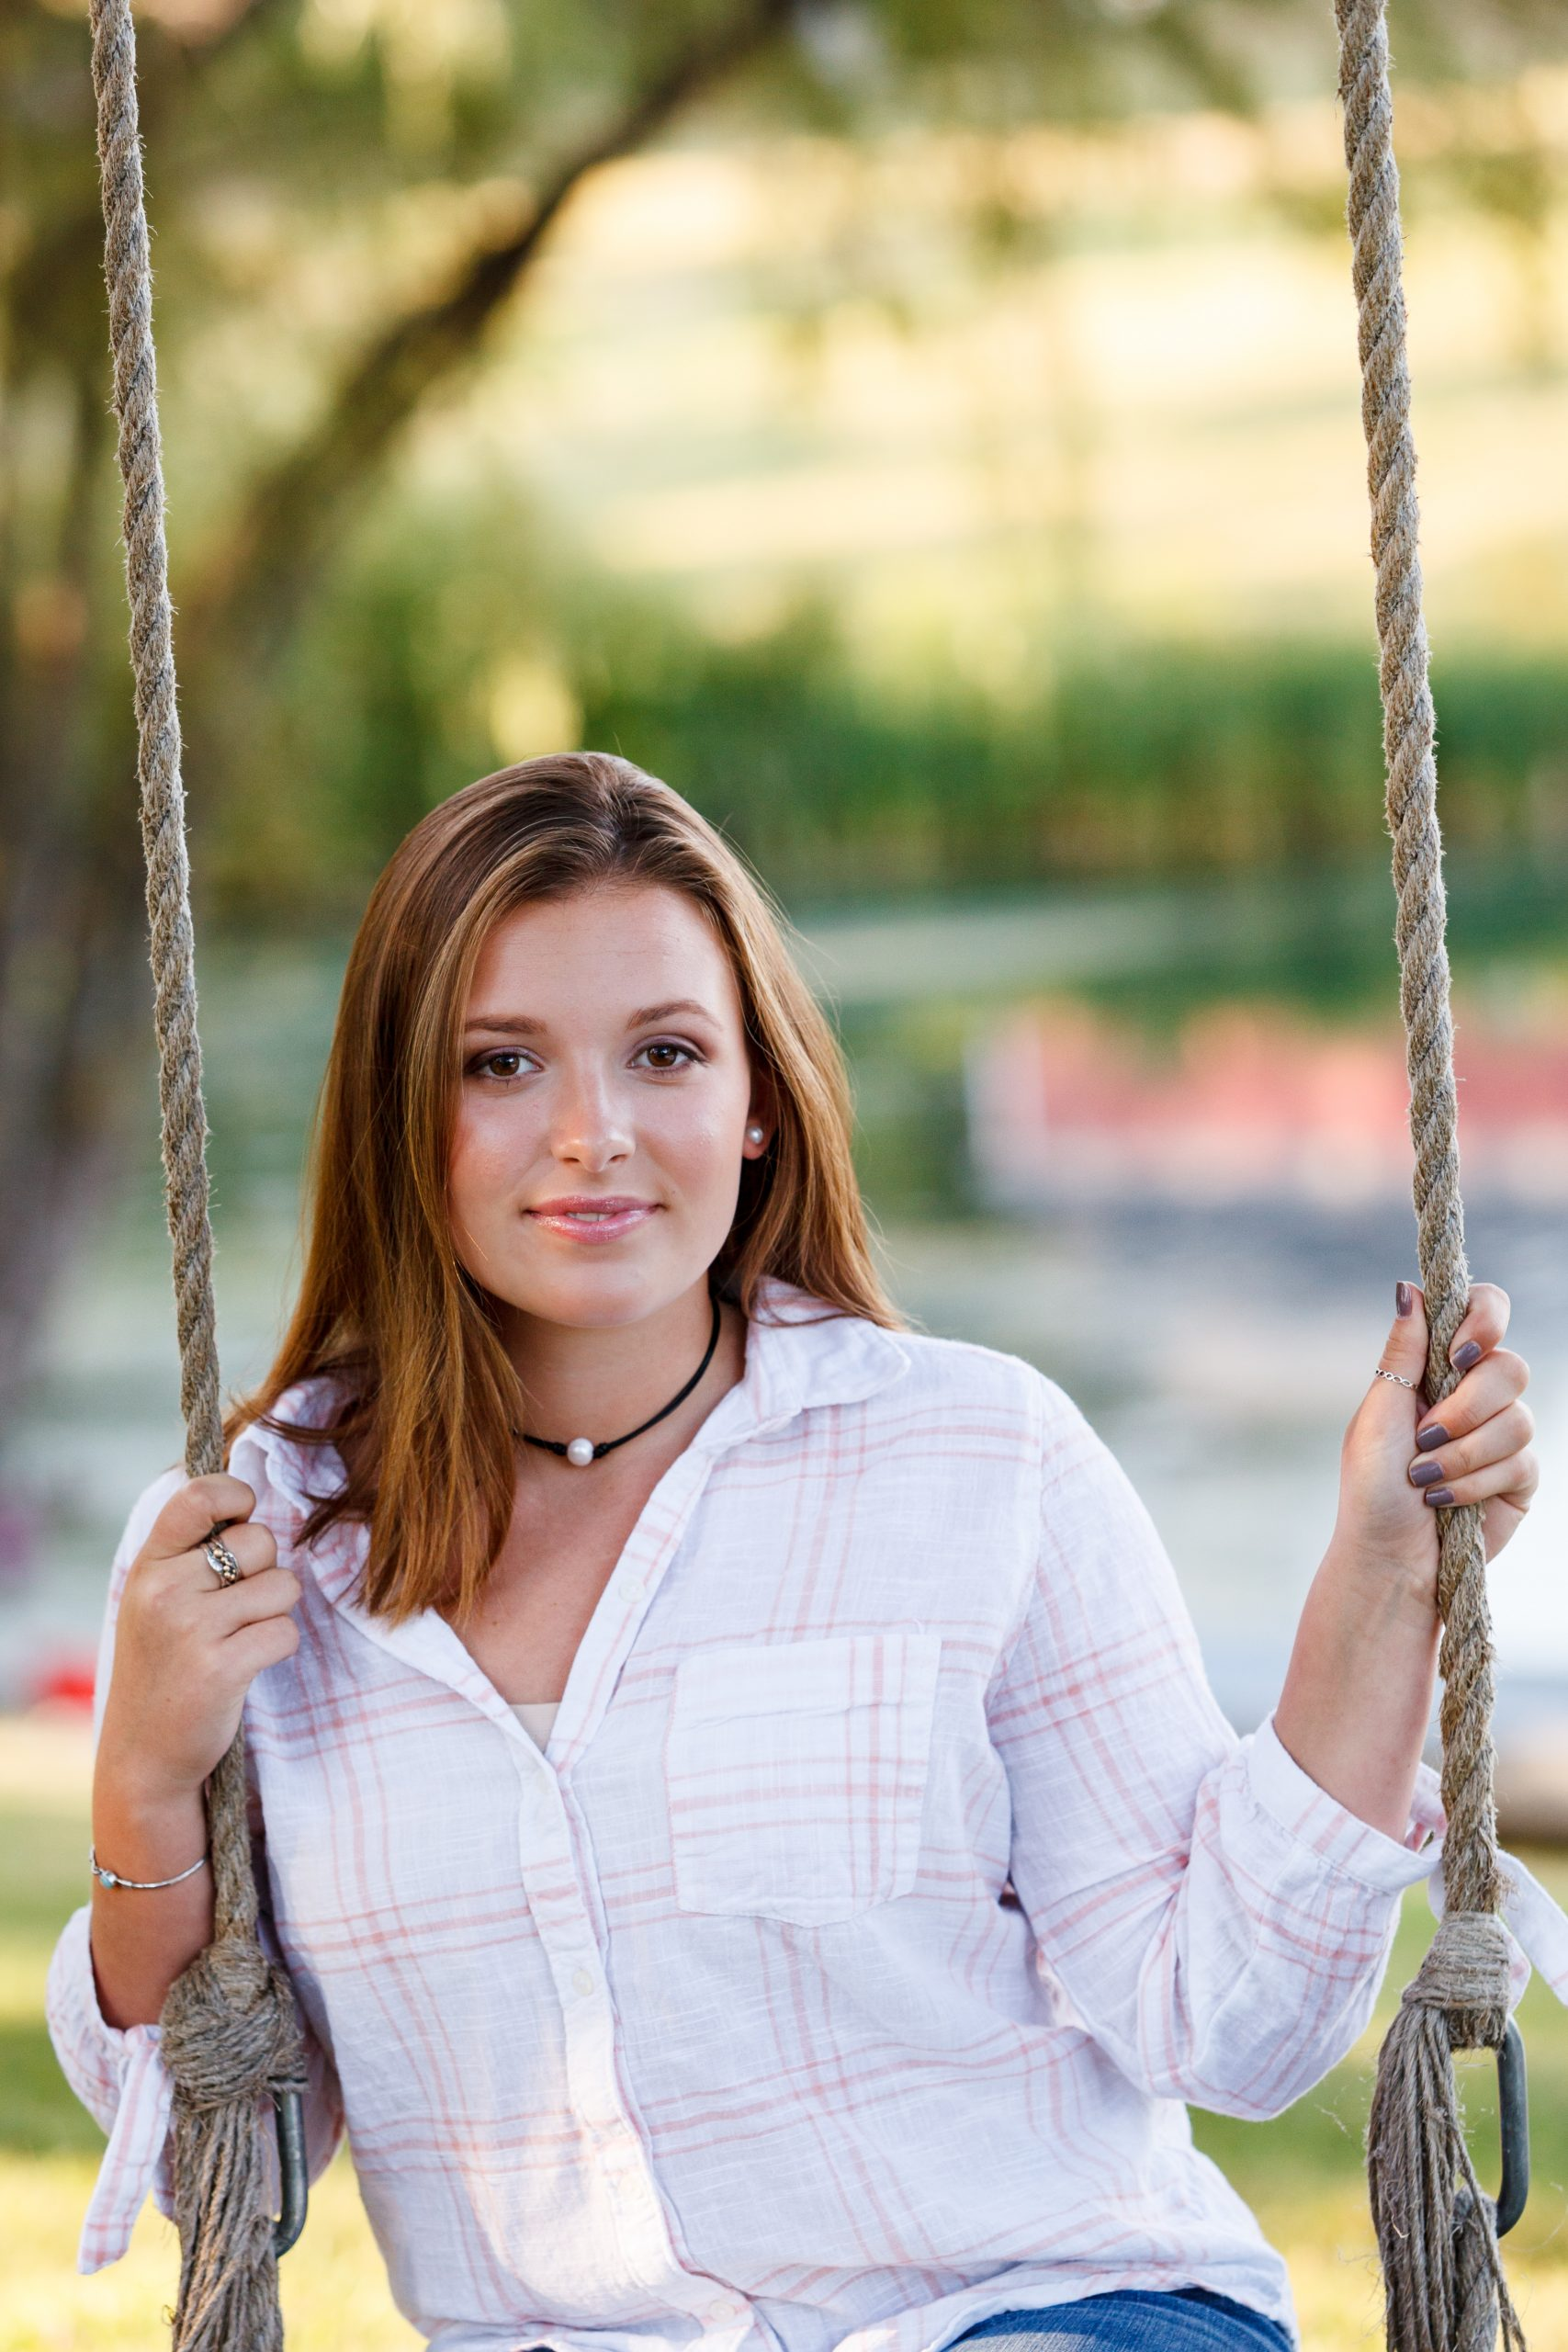 teenage girl in white button down shirt holding onto swing ropes